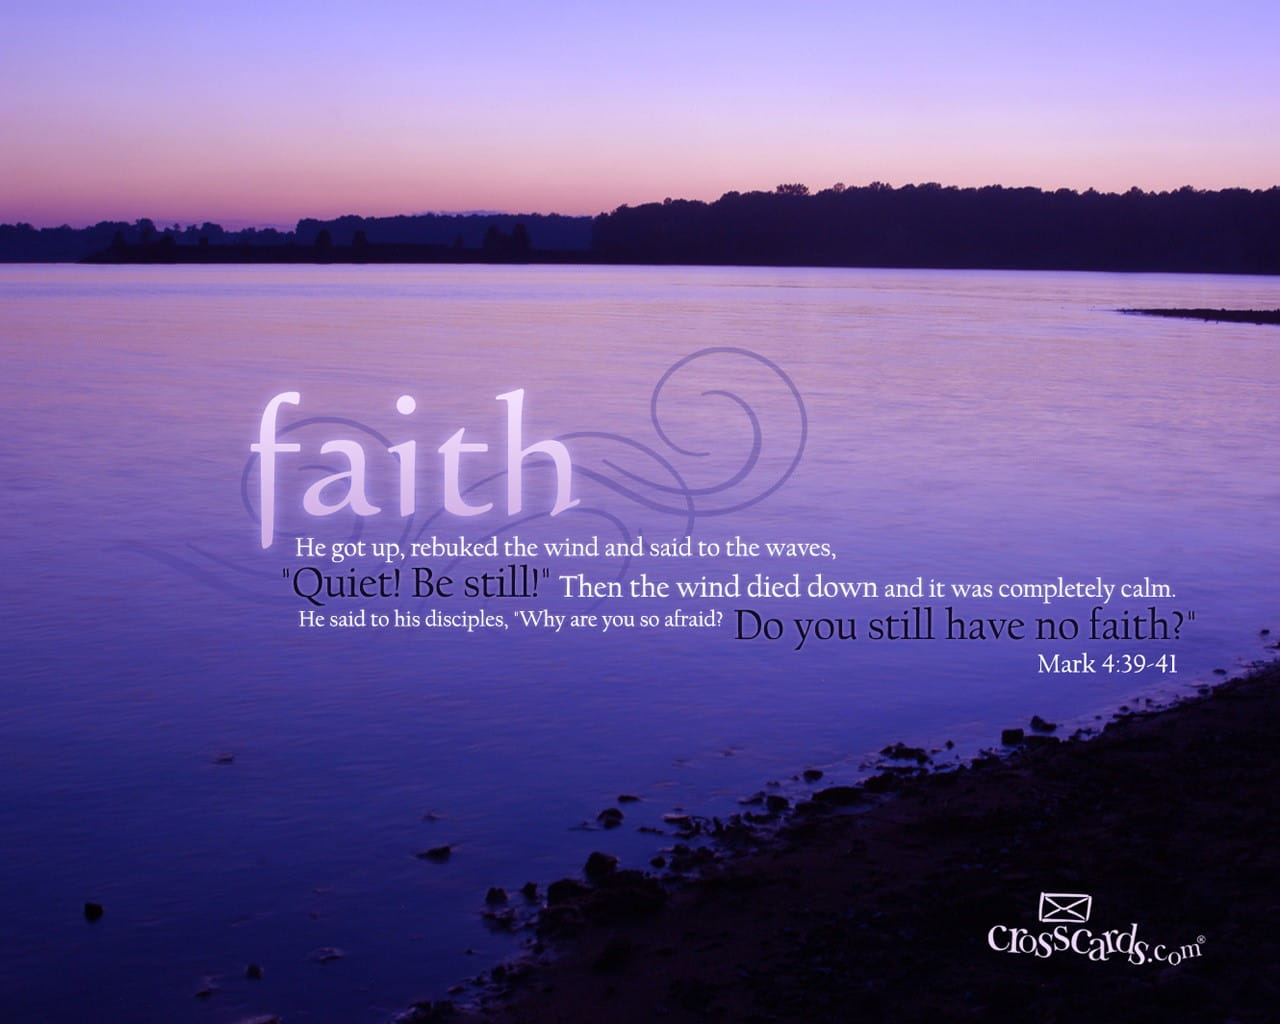 Simple Wallpaper Home Screen Bible Verse - 24271-faith-mark--39-414-1280-x-1024  Pictures_745731.jpg